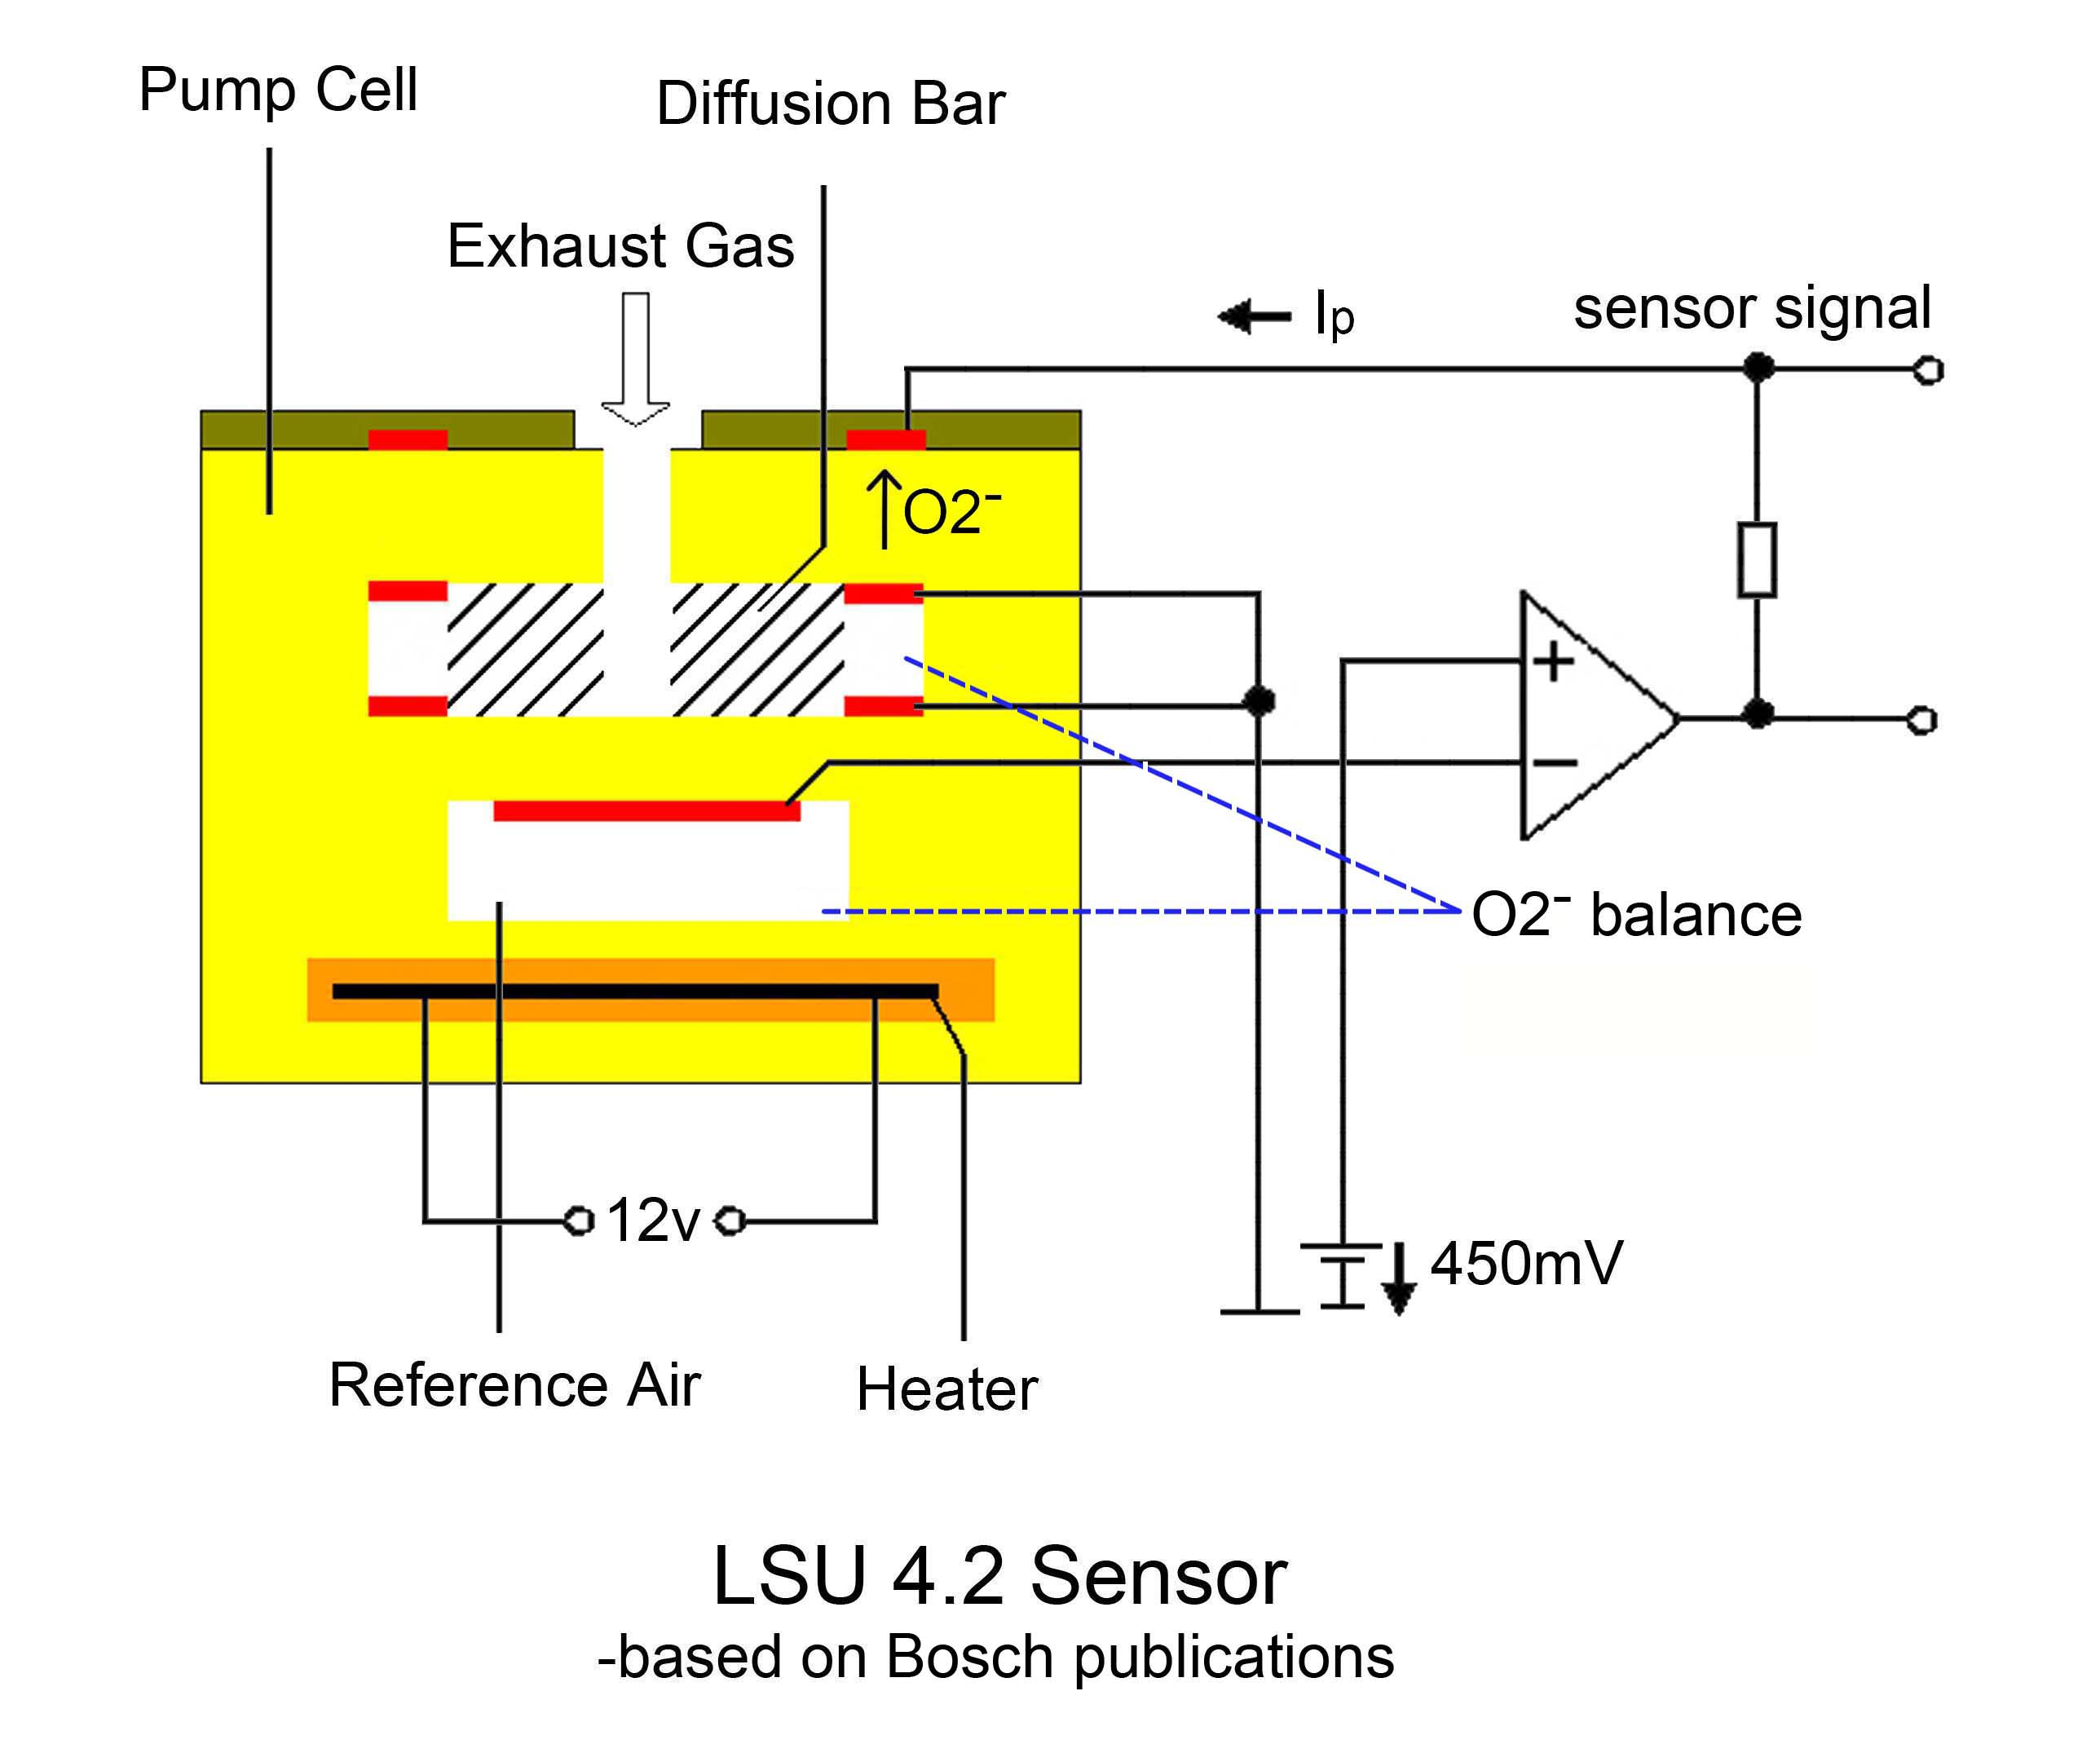 LSU4.2 bosch lsu 4 9 is superior to lsu 4 2 sensors ecotrons apsx wideband wiring diagram at reclaimingppi.co